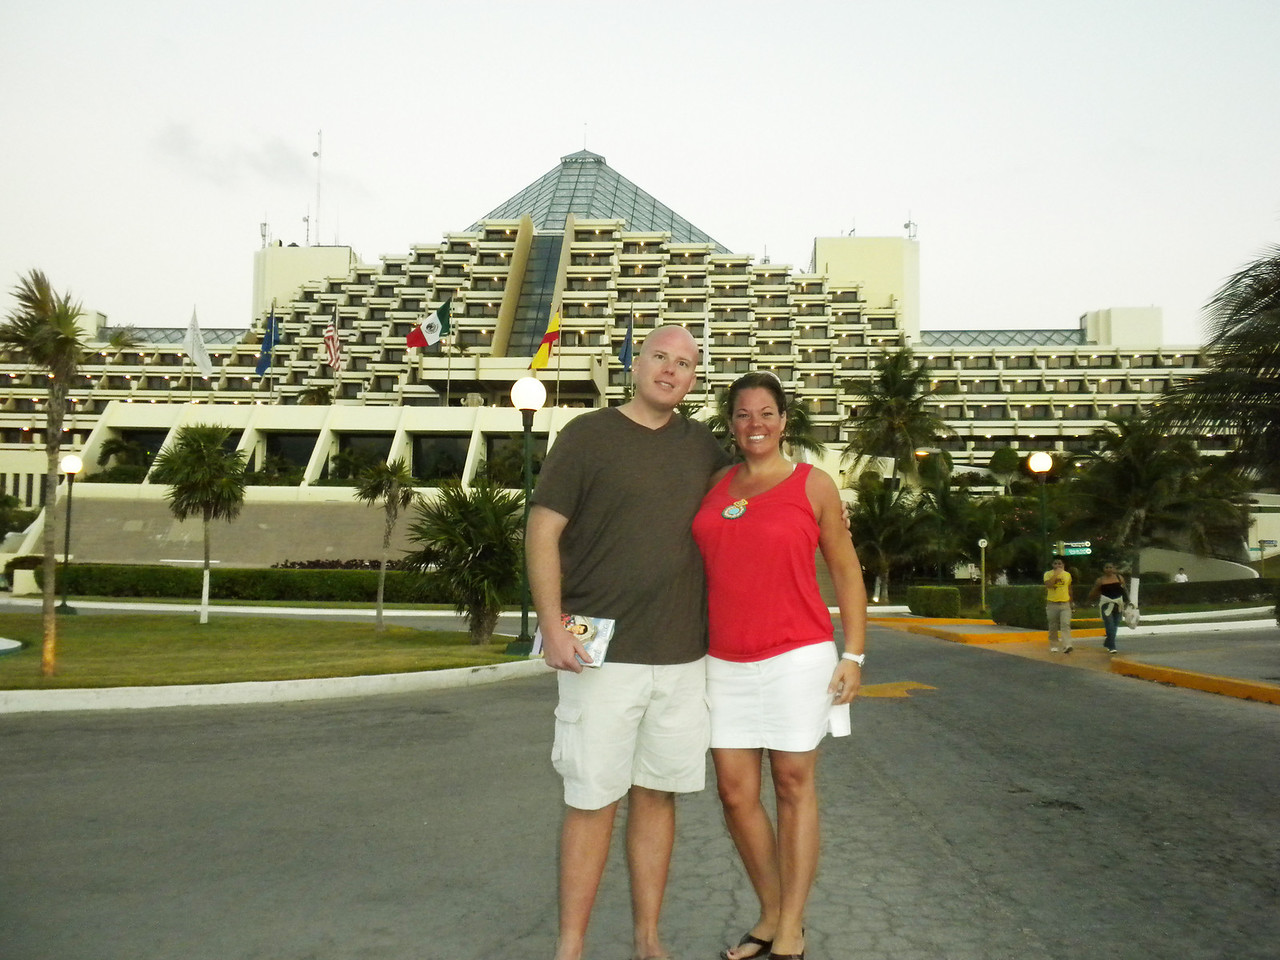 Daddy and Mommy in front of our hotel (Grand Melia), waiting for the city bus to take us to the store.